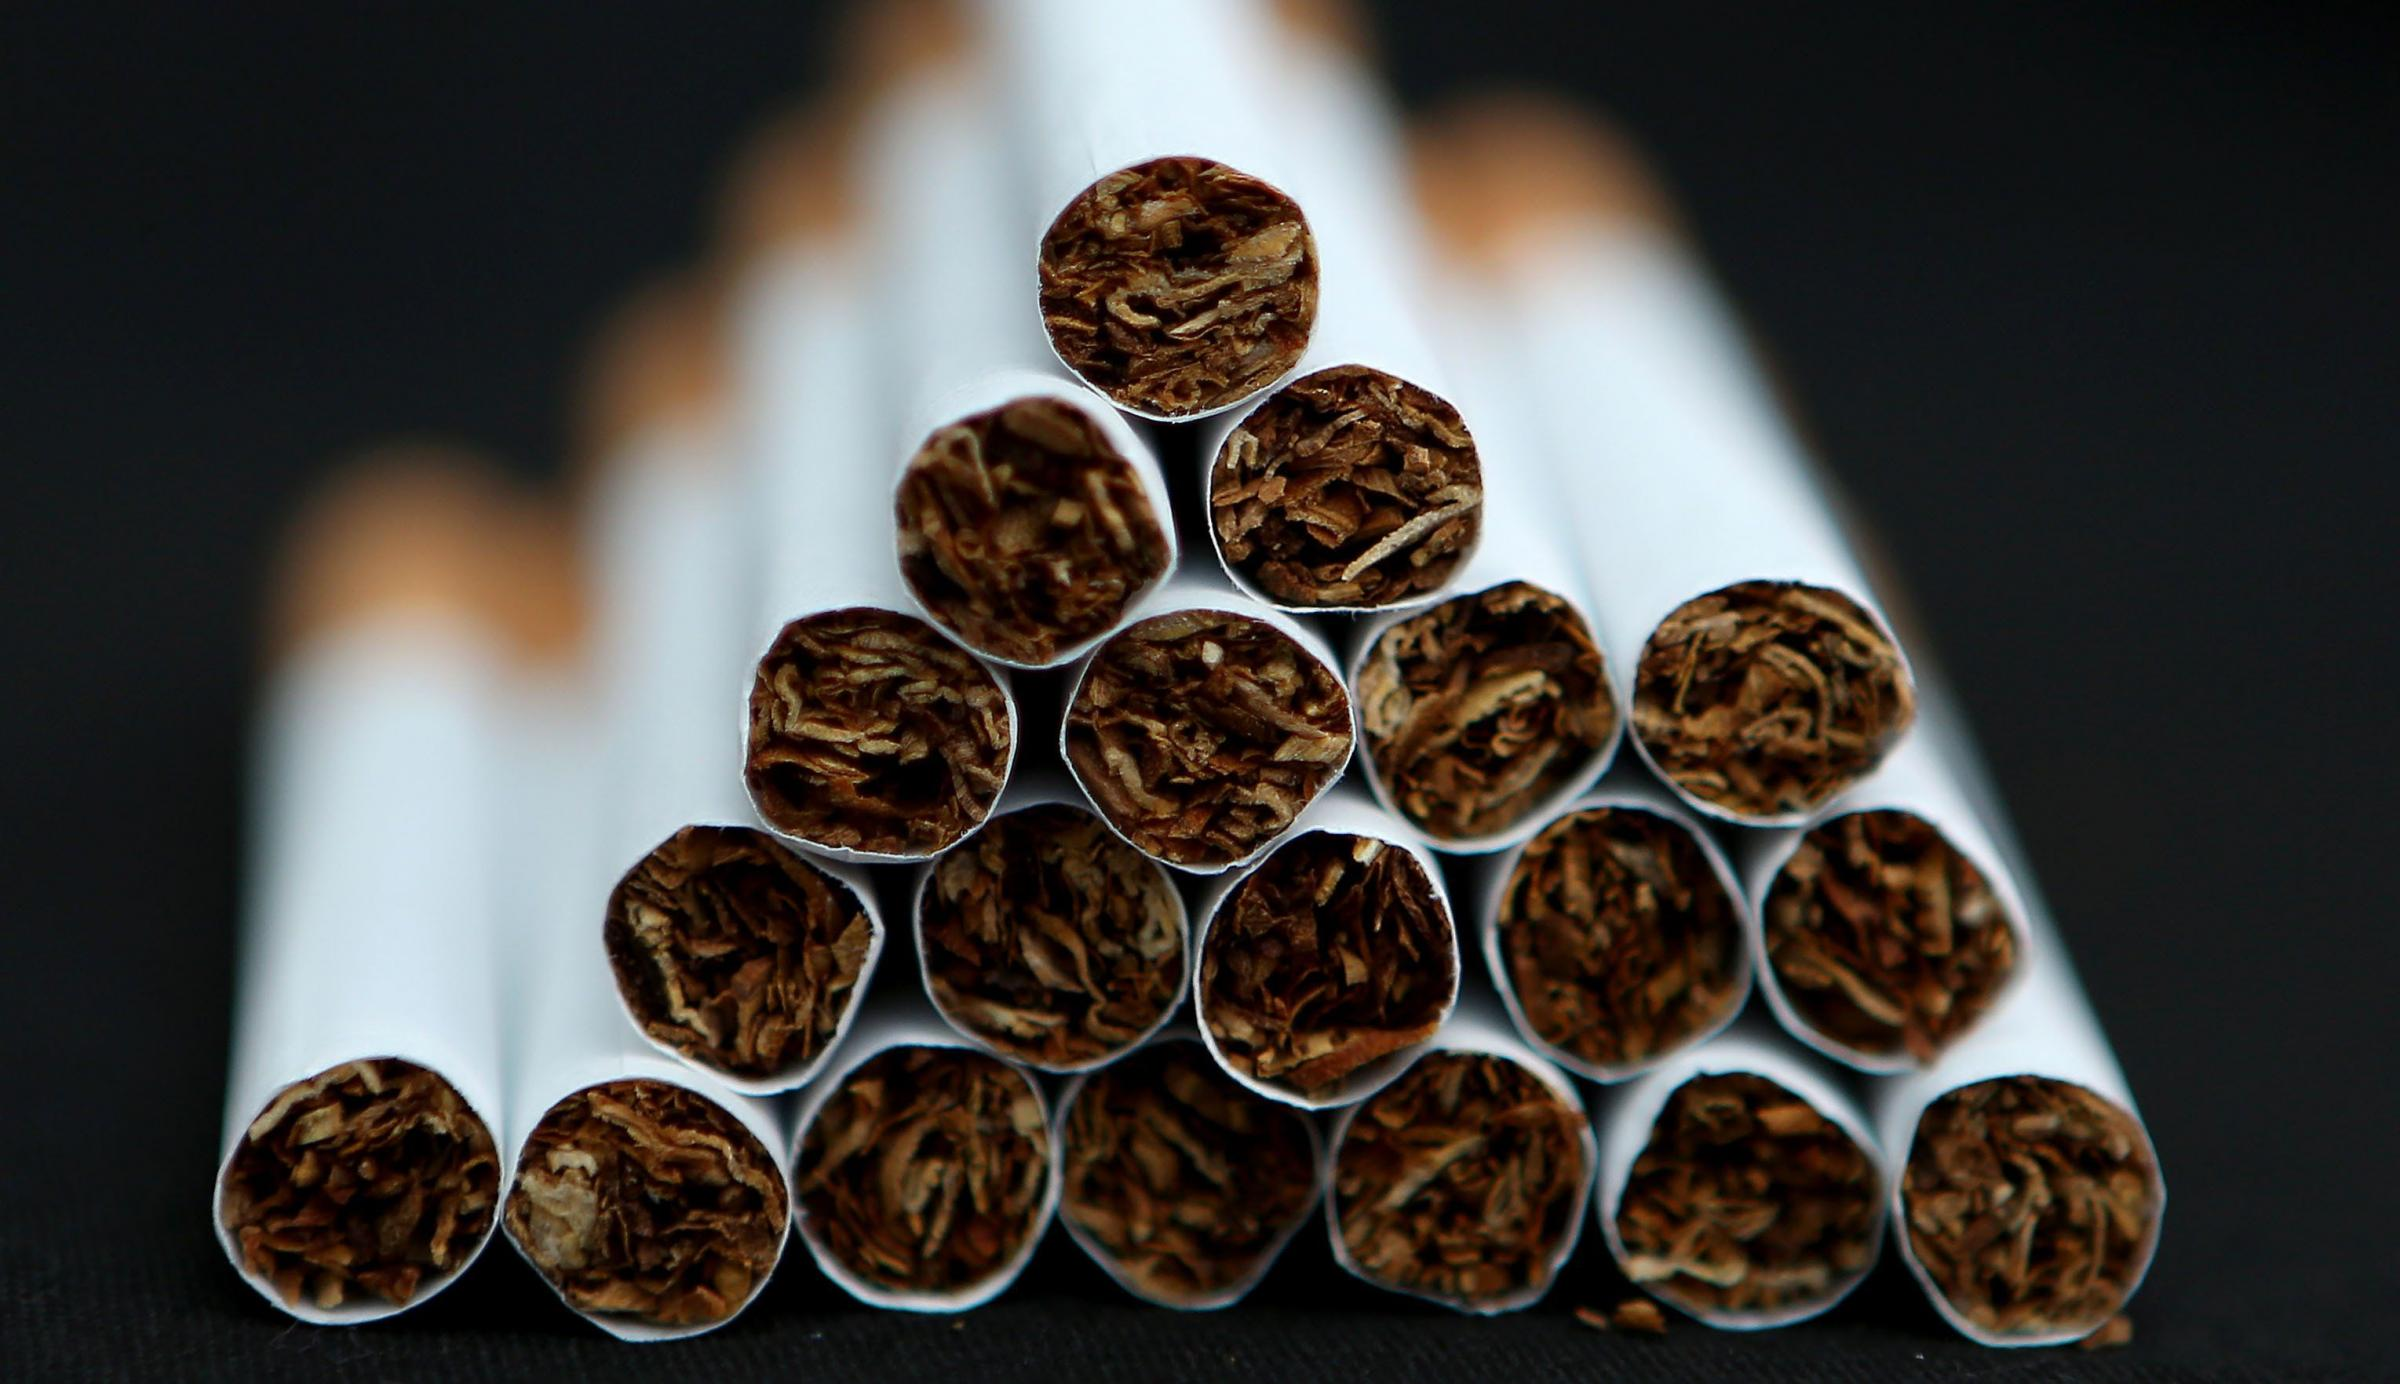 File photo dated 18/03/14 of a pile of cigarettes as a ban on displaying tobacco in small shops comes into force. PRESS ASSOCIATION Photo. Issue date: Monday April 6, 2015. The display of tobacco products, which has been illegal for large stores and super